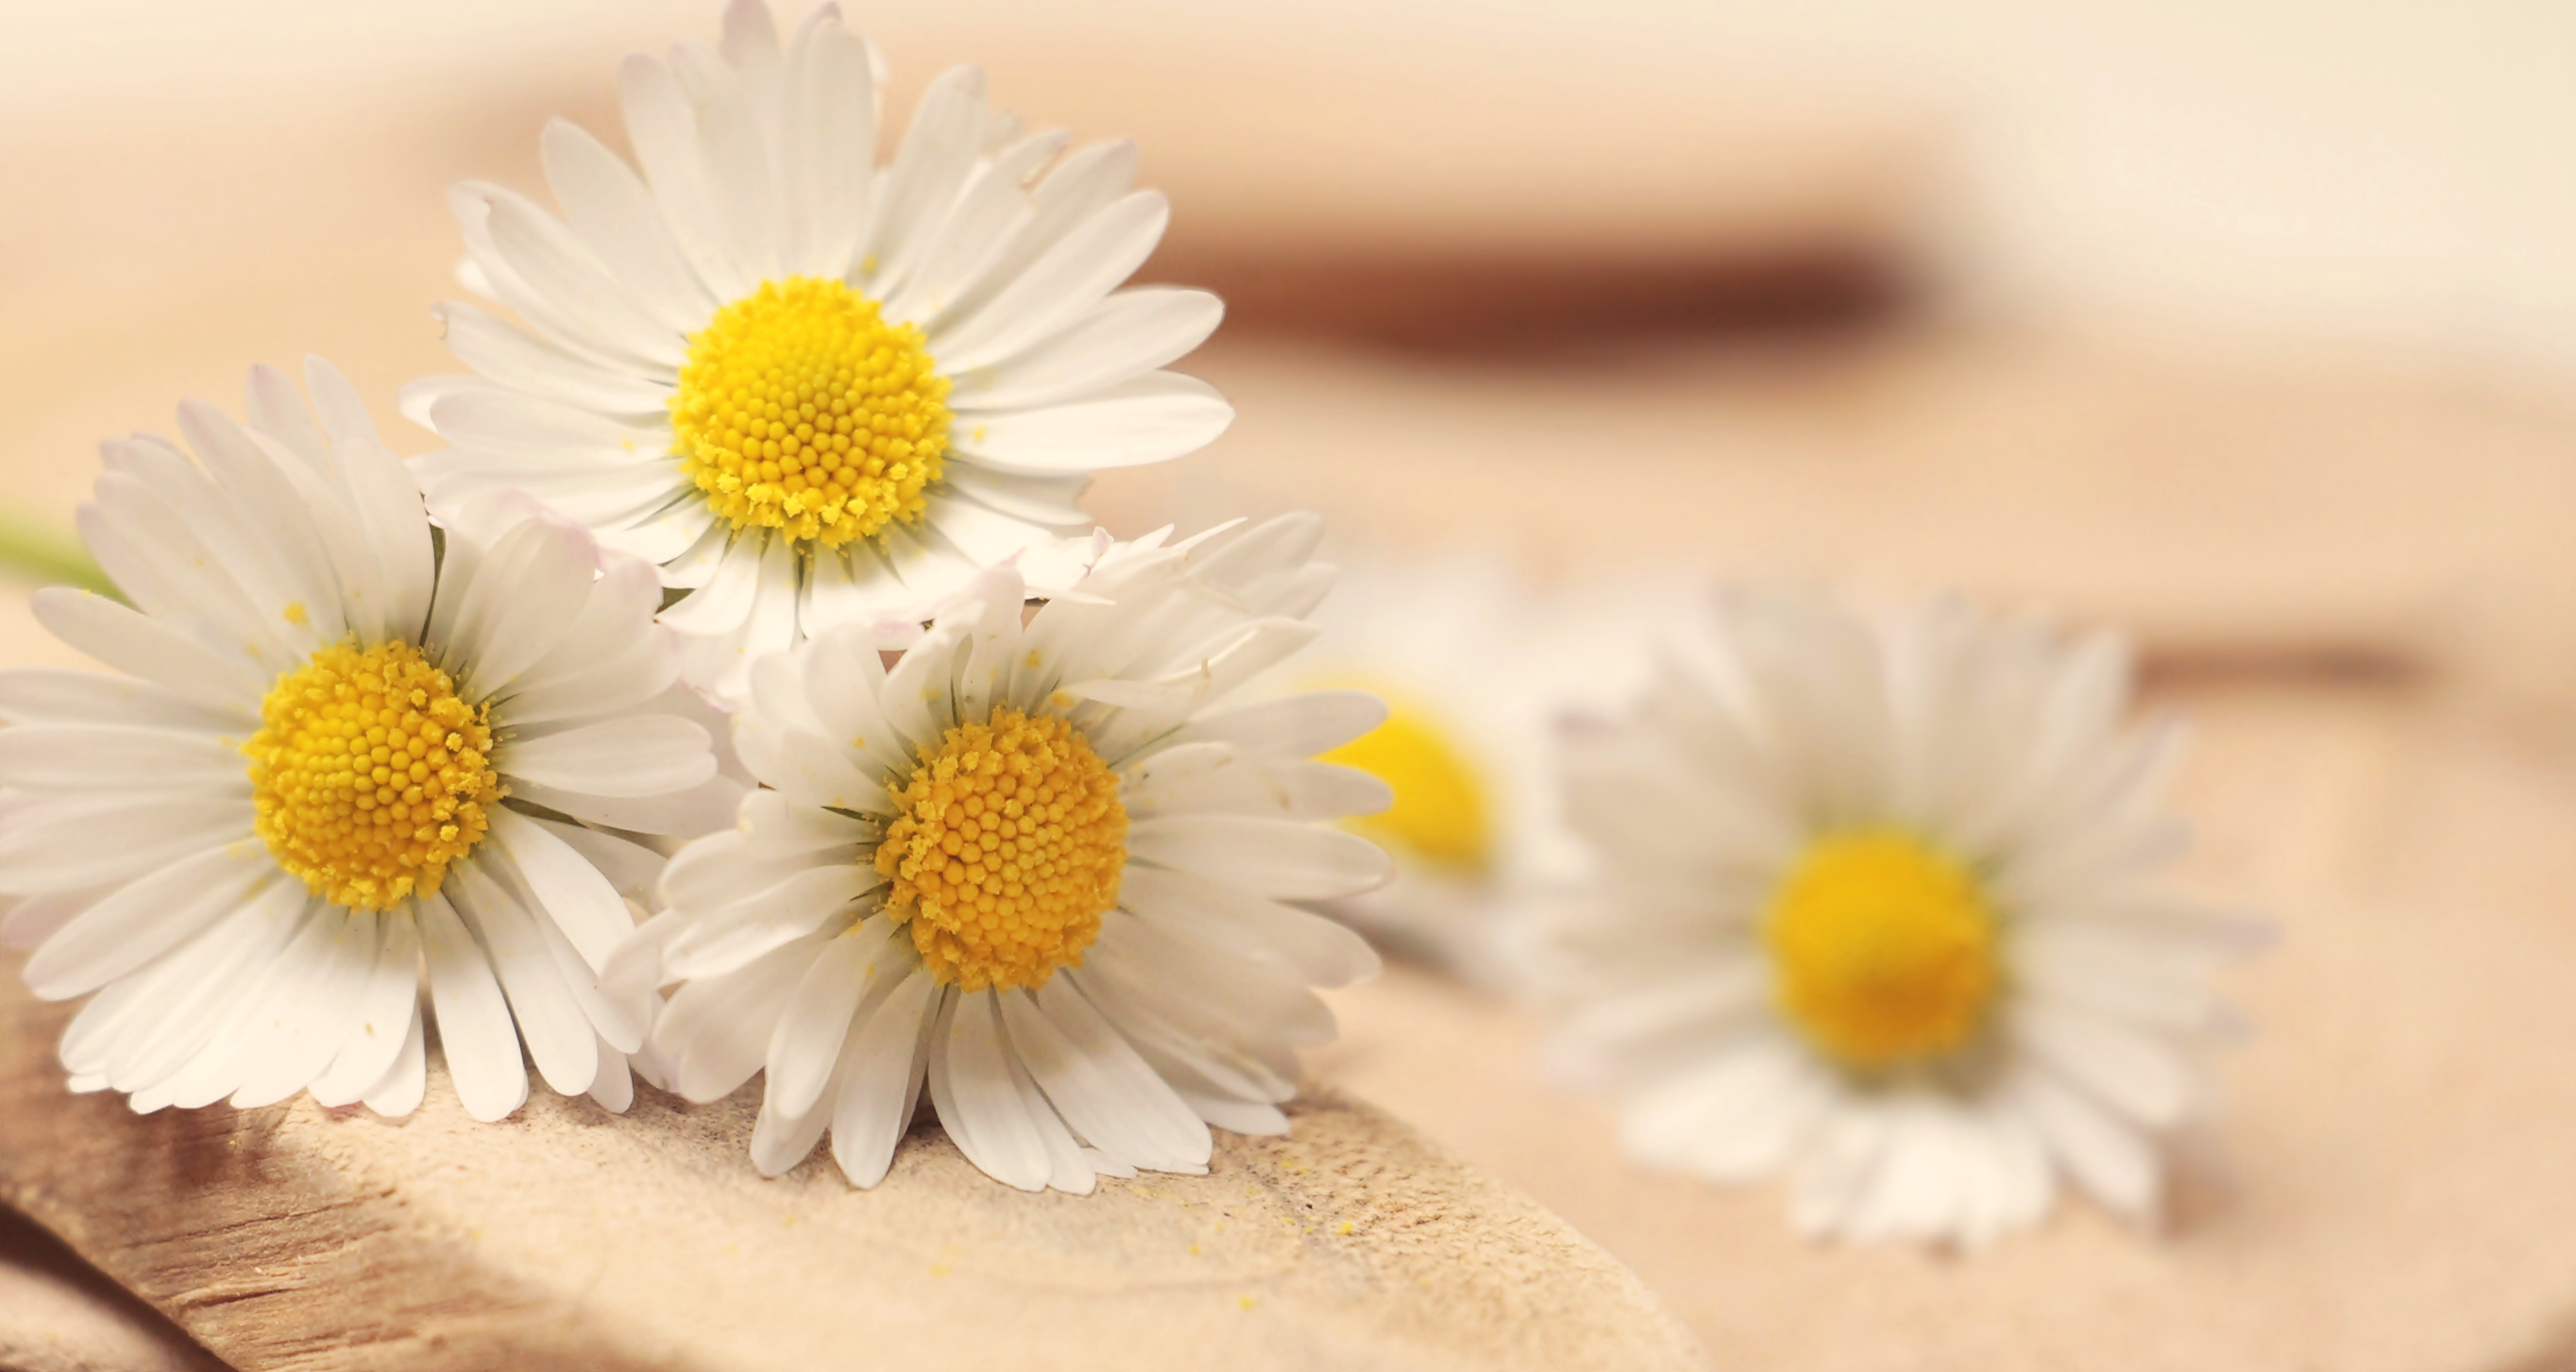 Why You Should Use Roman Chamomile Essential Oil The Organic Goat